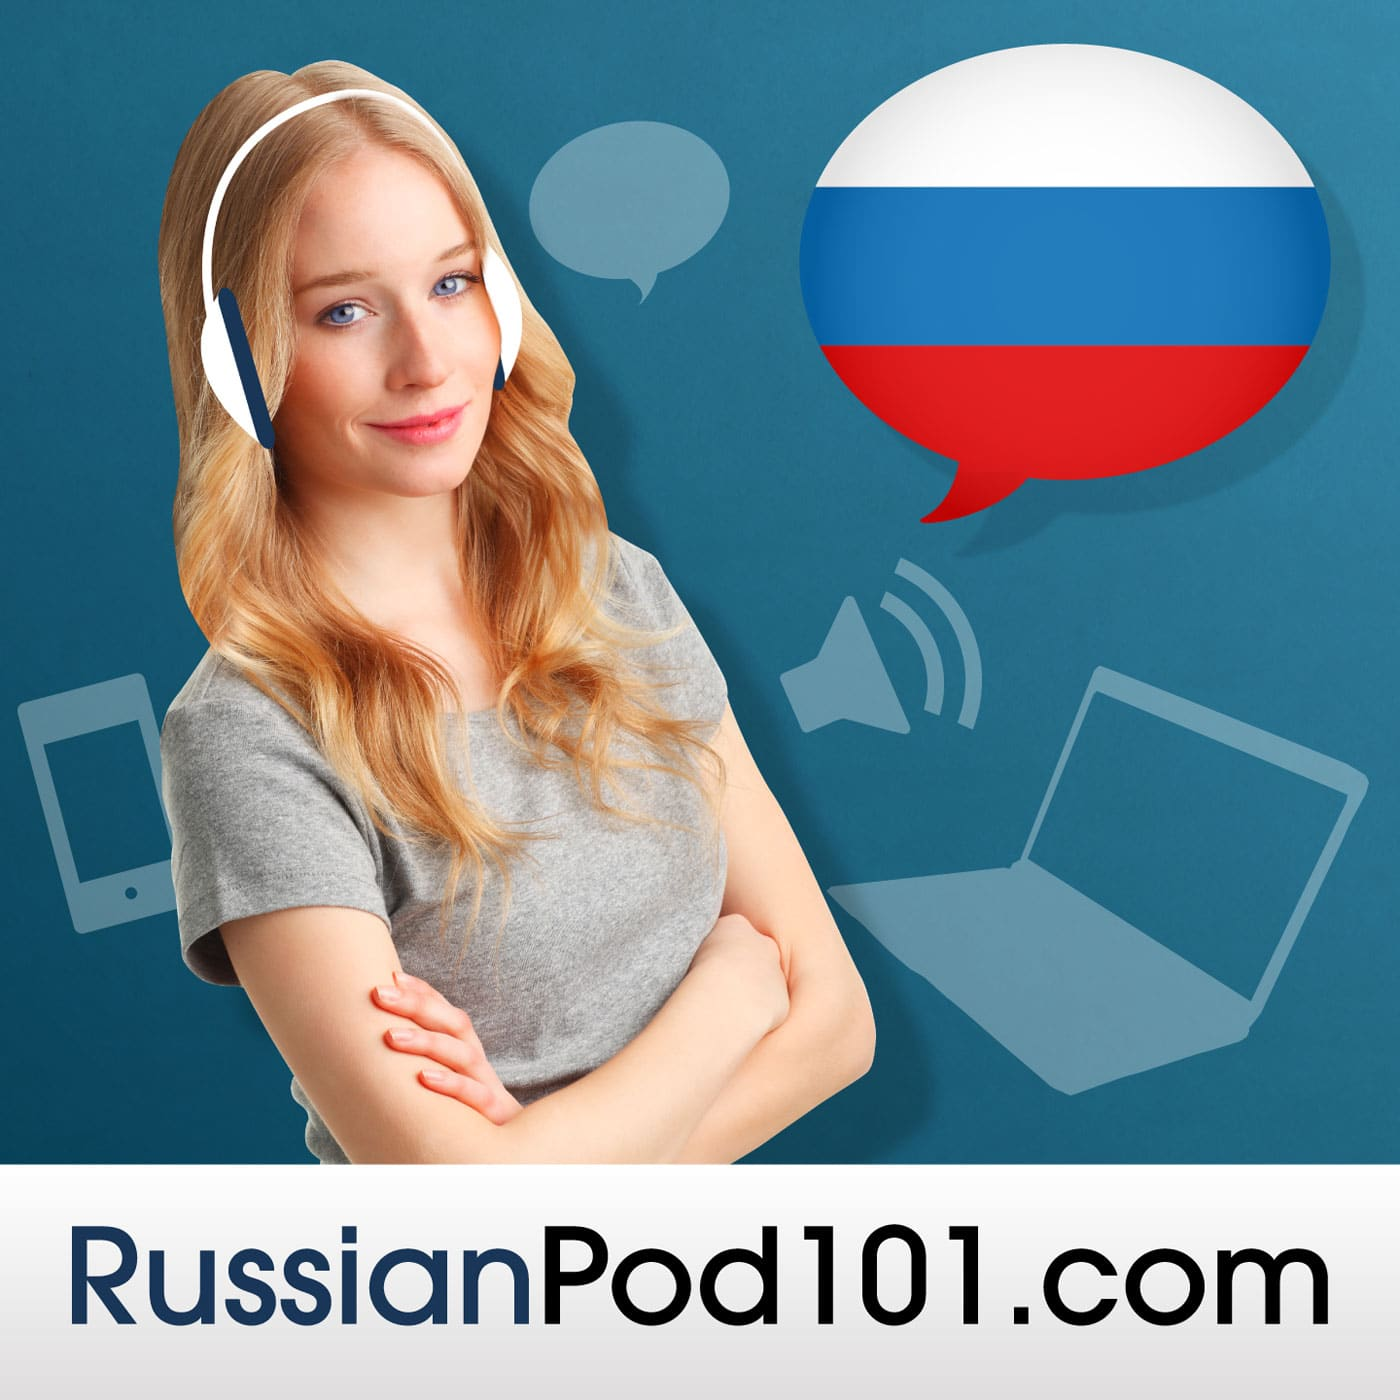 Learn Russian With These 7 Enchanted Video Resources